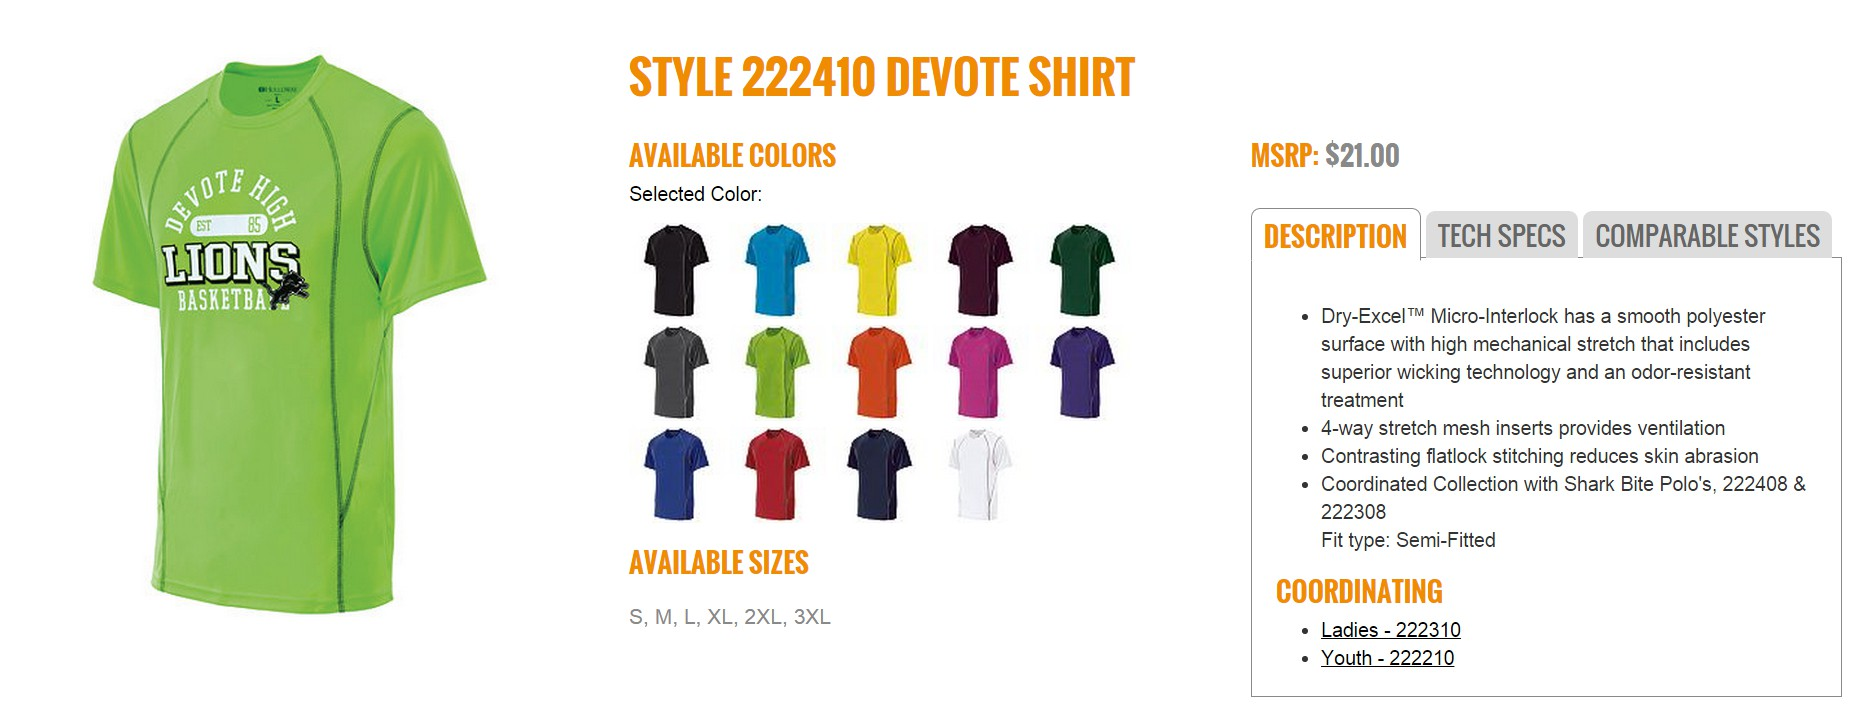 Group Fundraising Store Apparel Fundraising Holloway Devote Shirt 222410